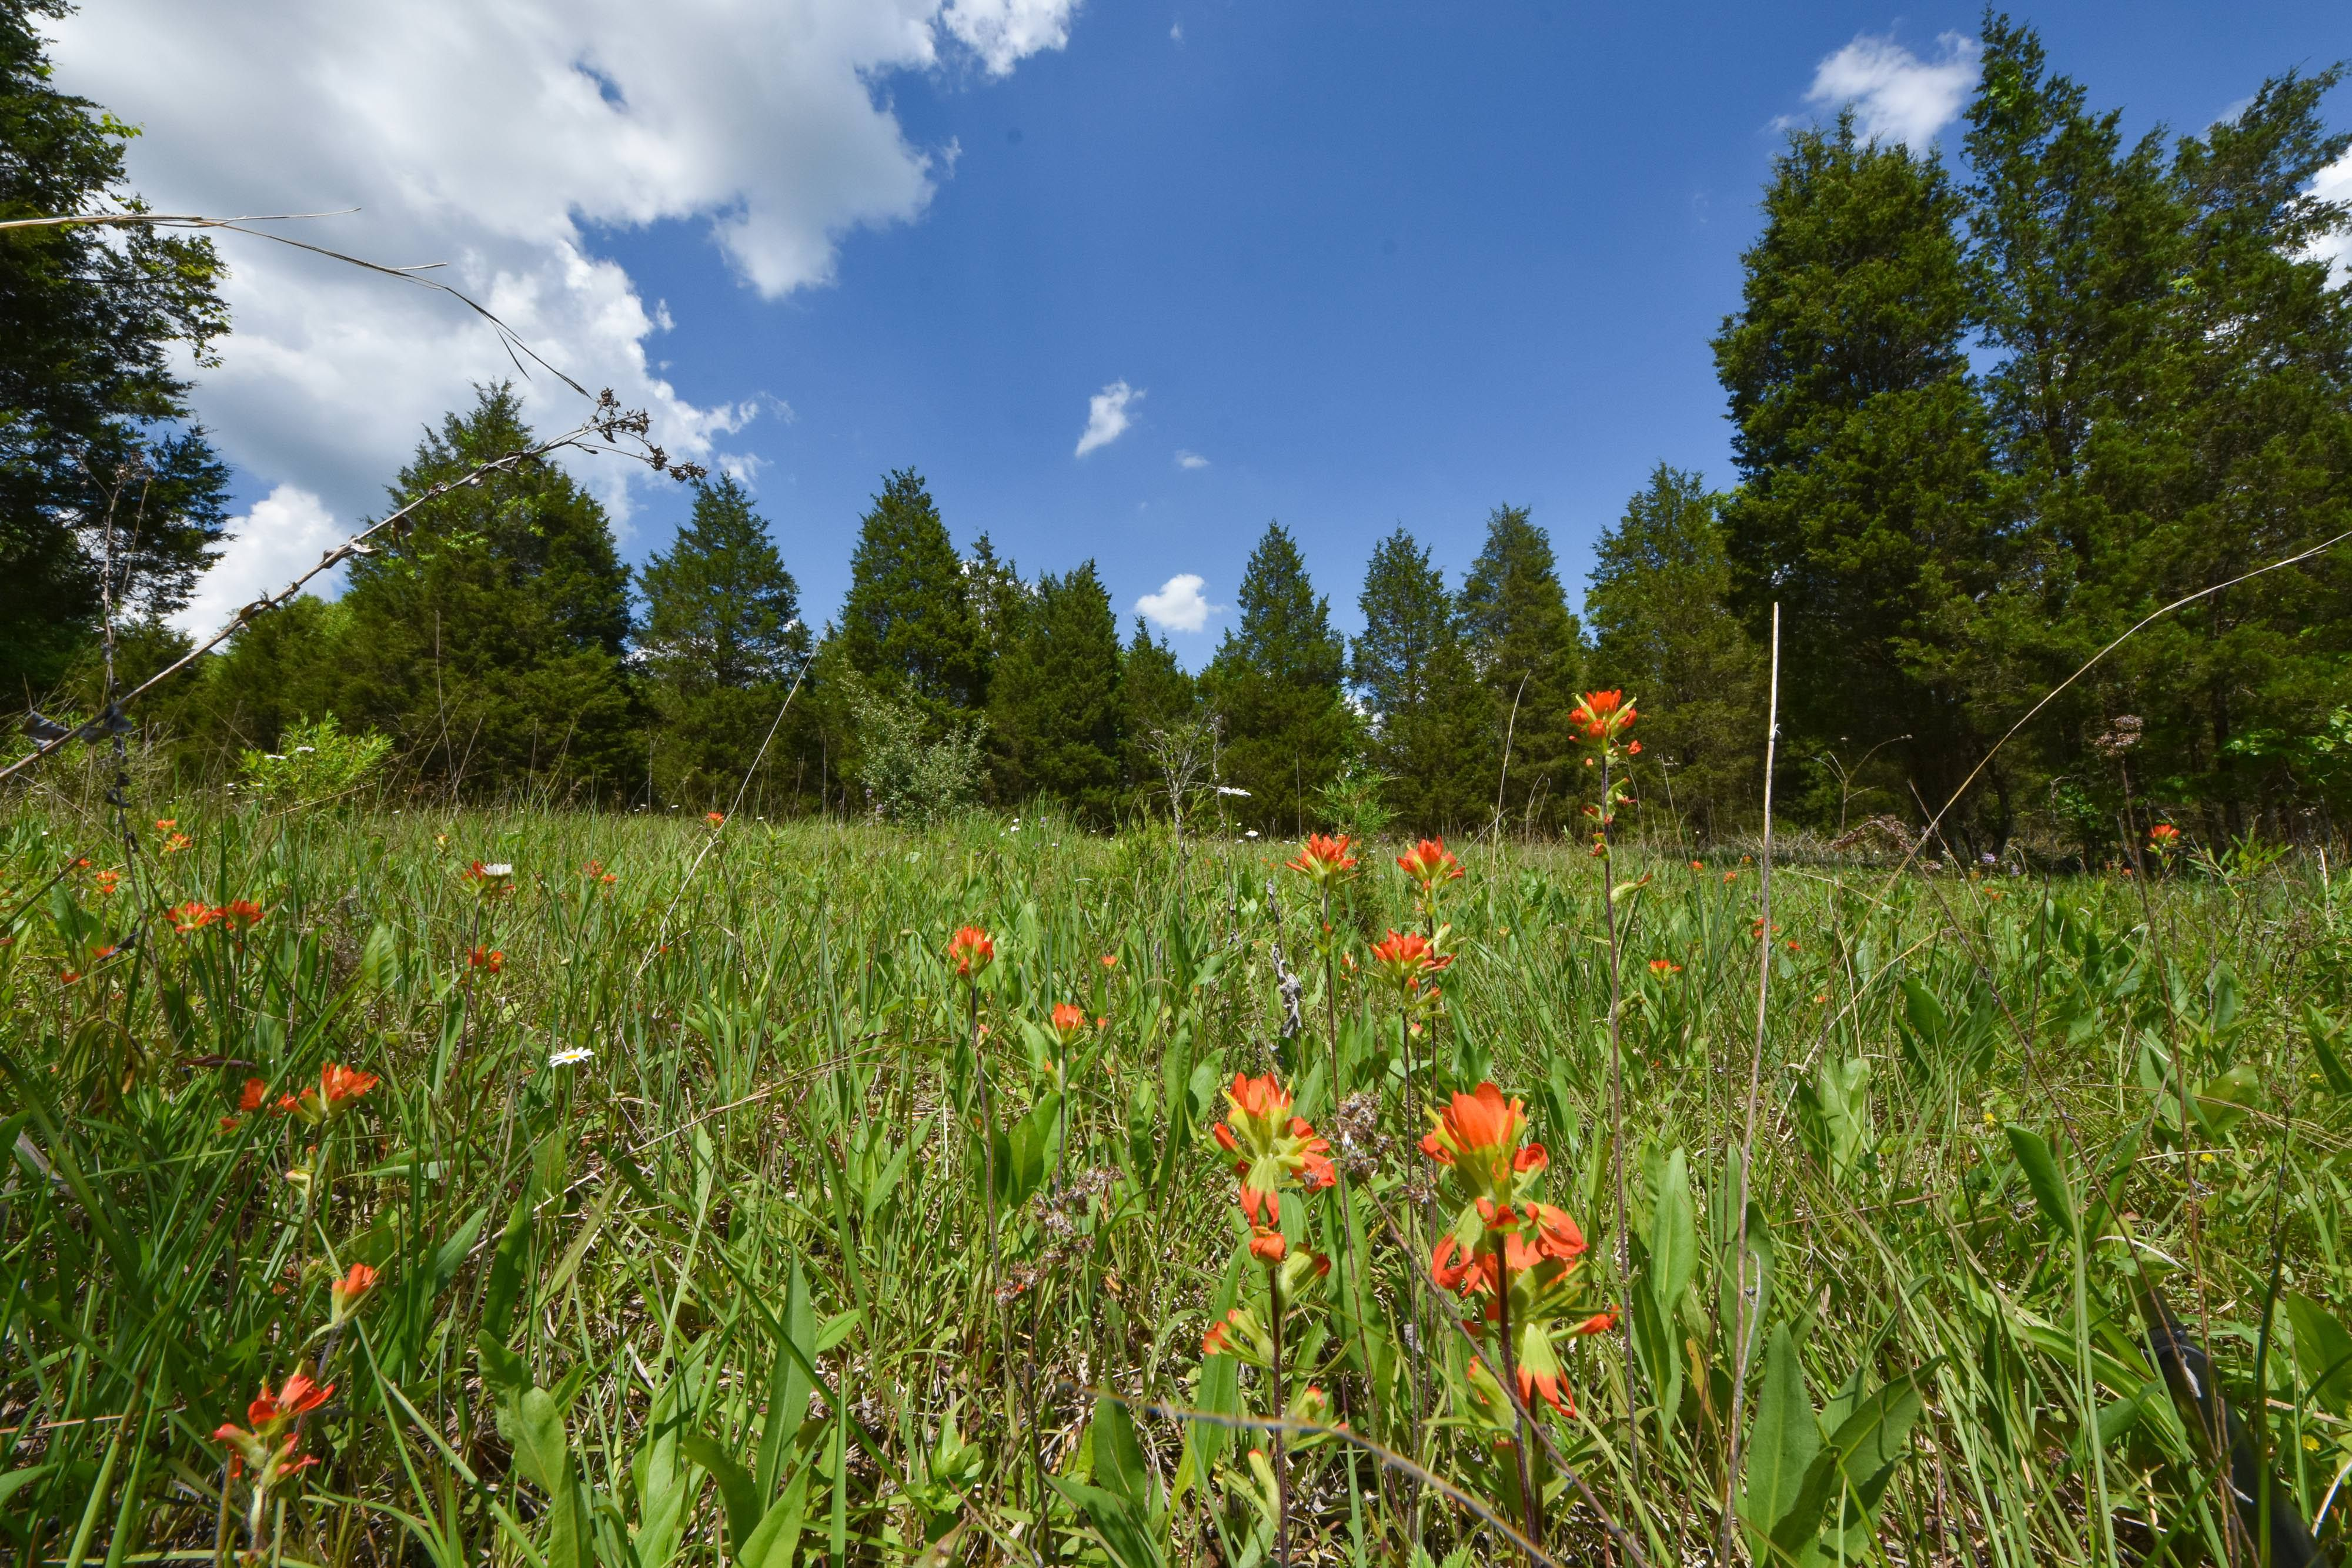 A green prairie dotted with bright scarlet flowers and surrounded by tall trees with a blue sky above.